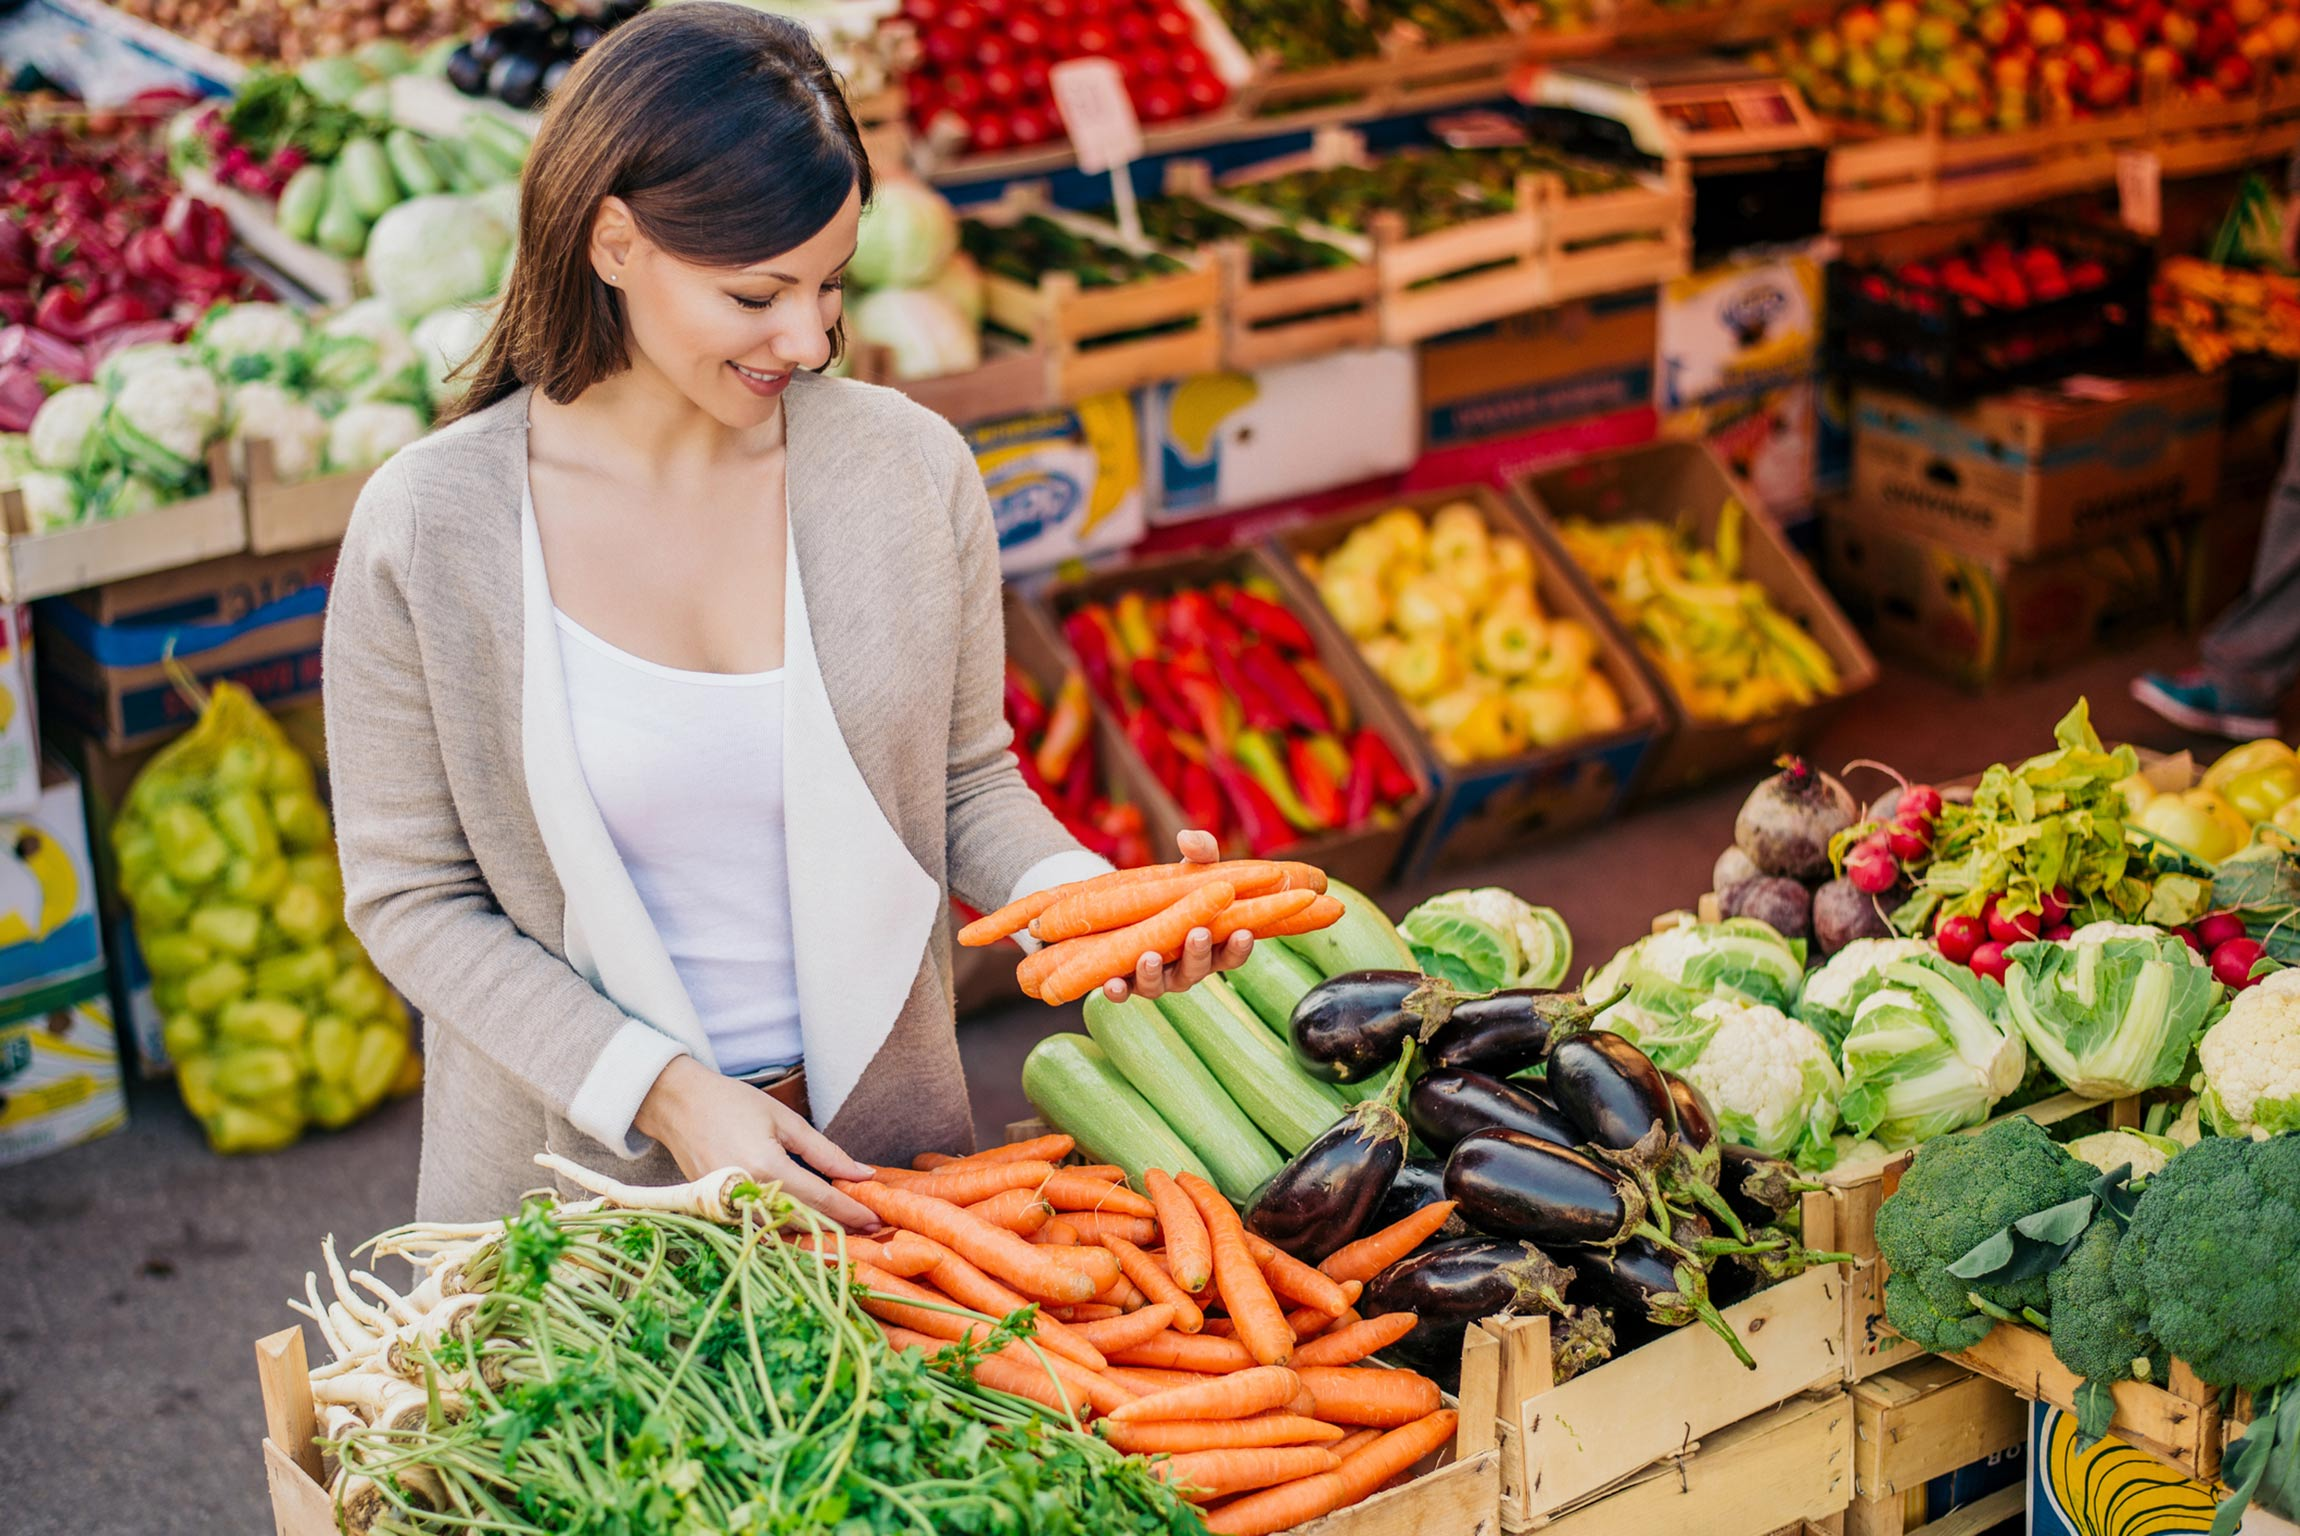 A woman shopping at a farmer's market holding carrots